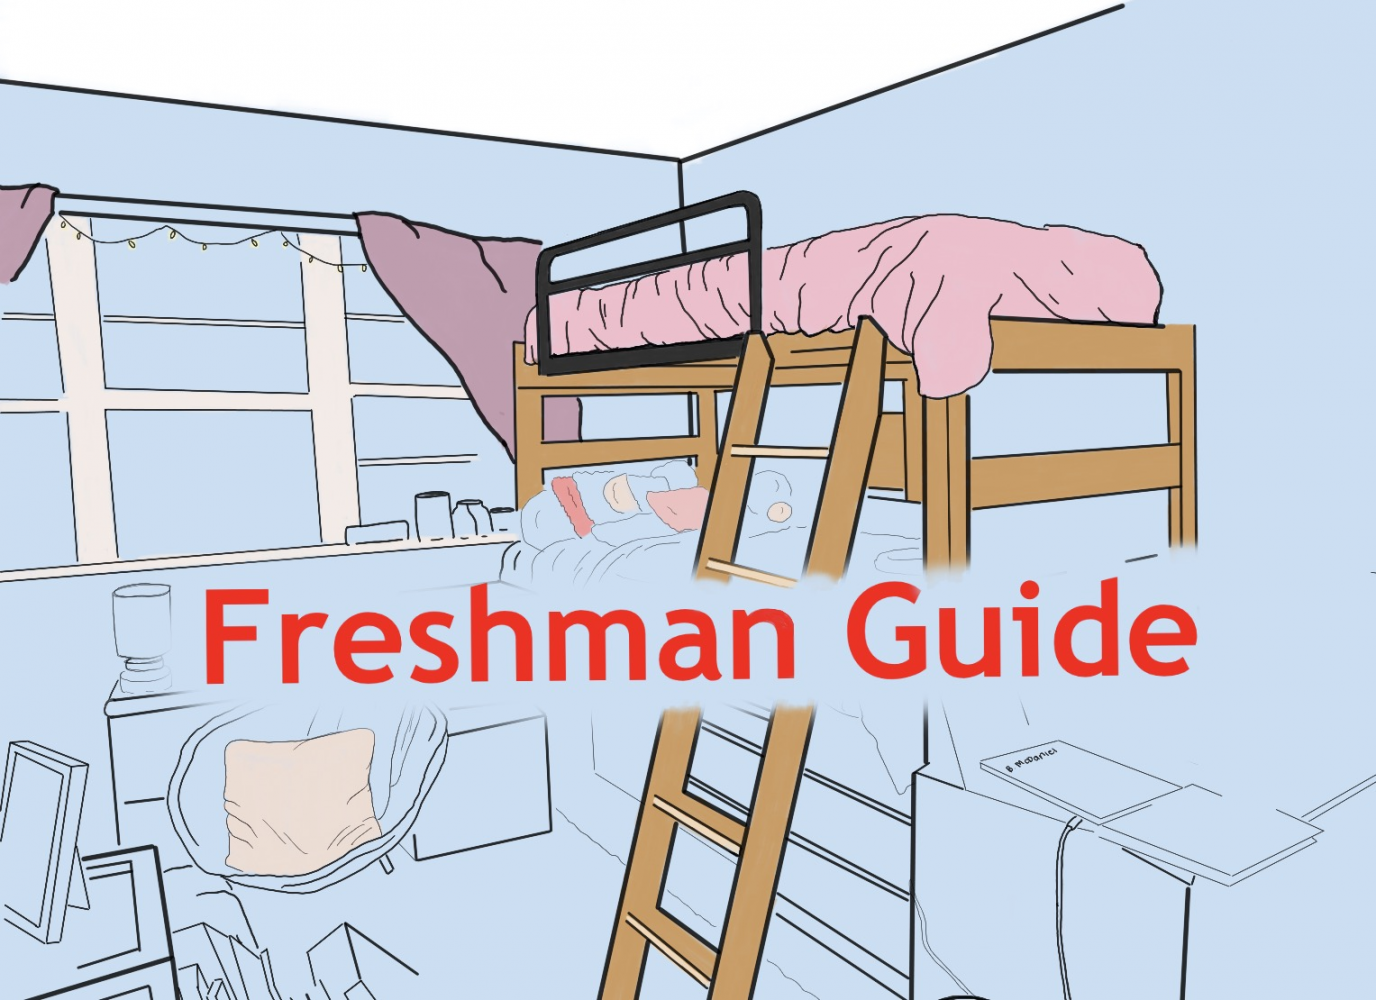 Guide to being a freshman Photo credit: Briana Mcdaniel